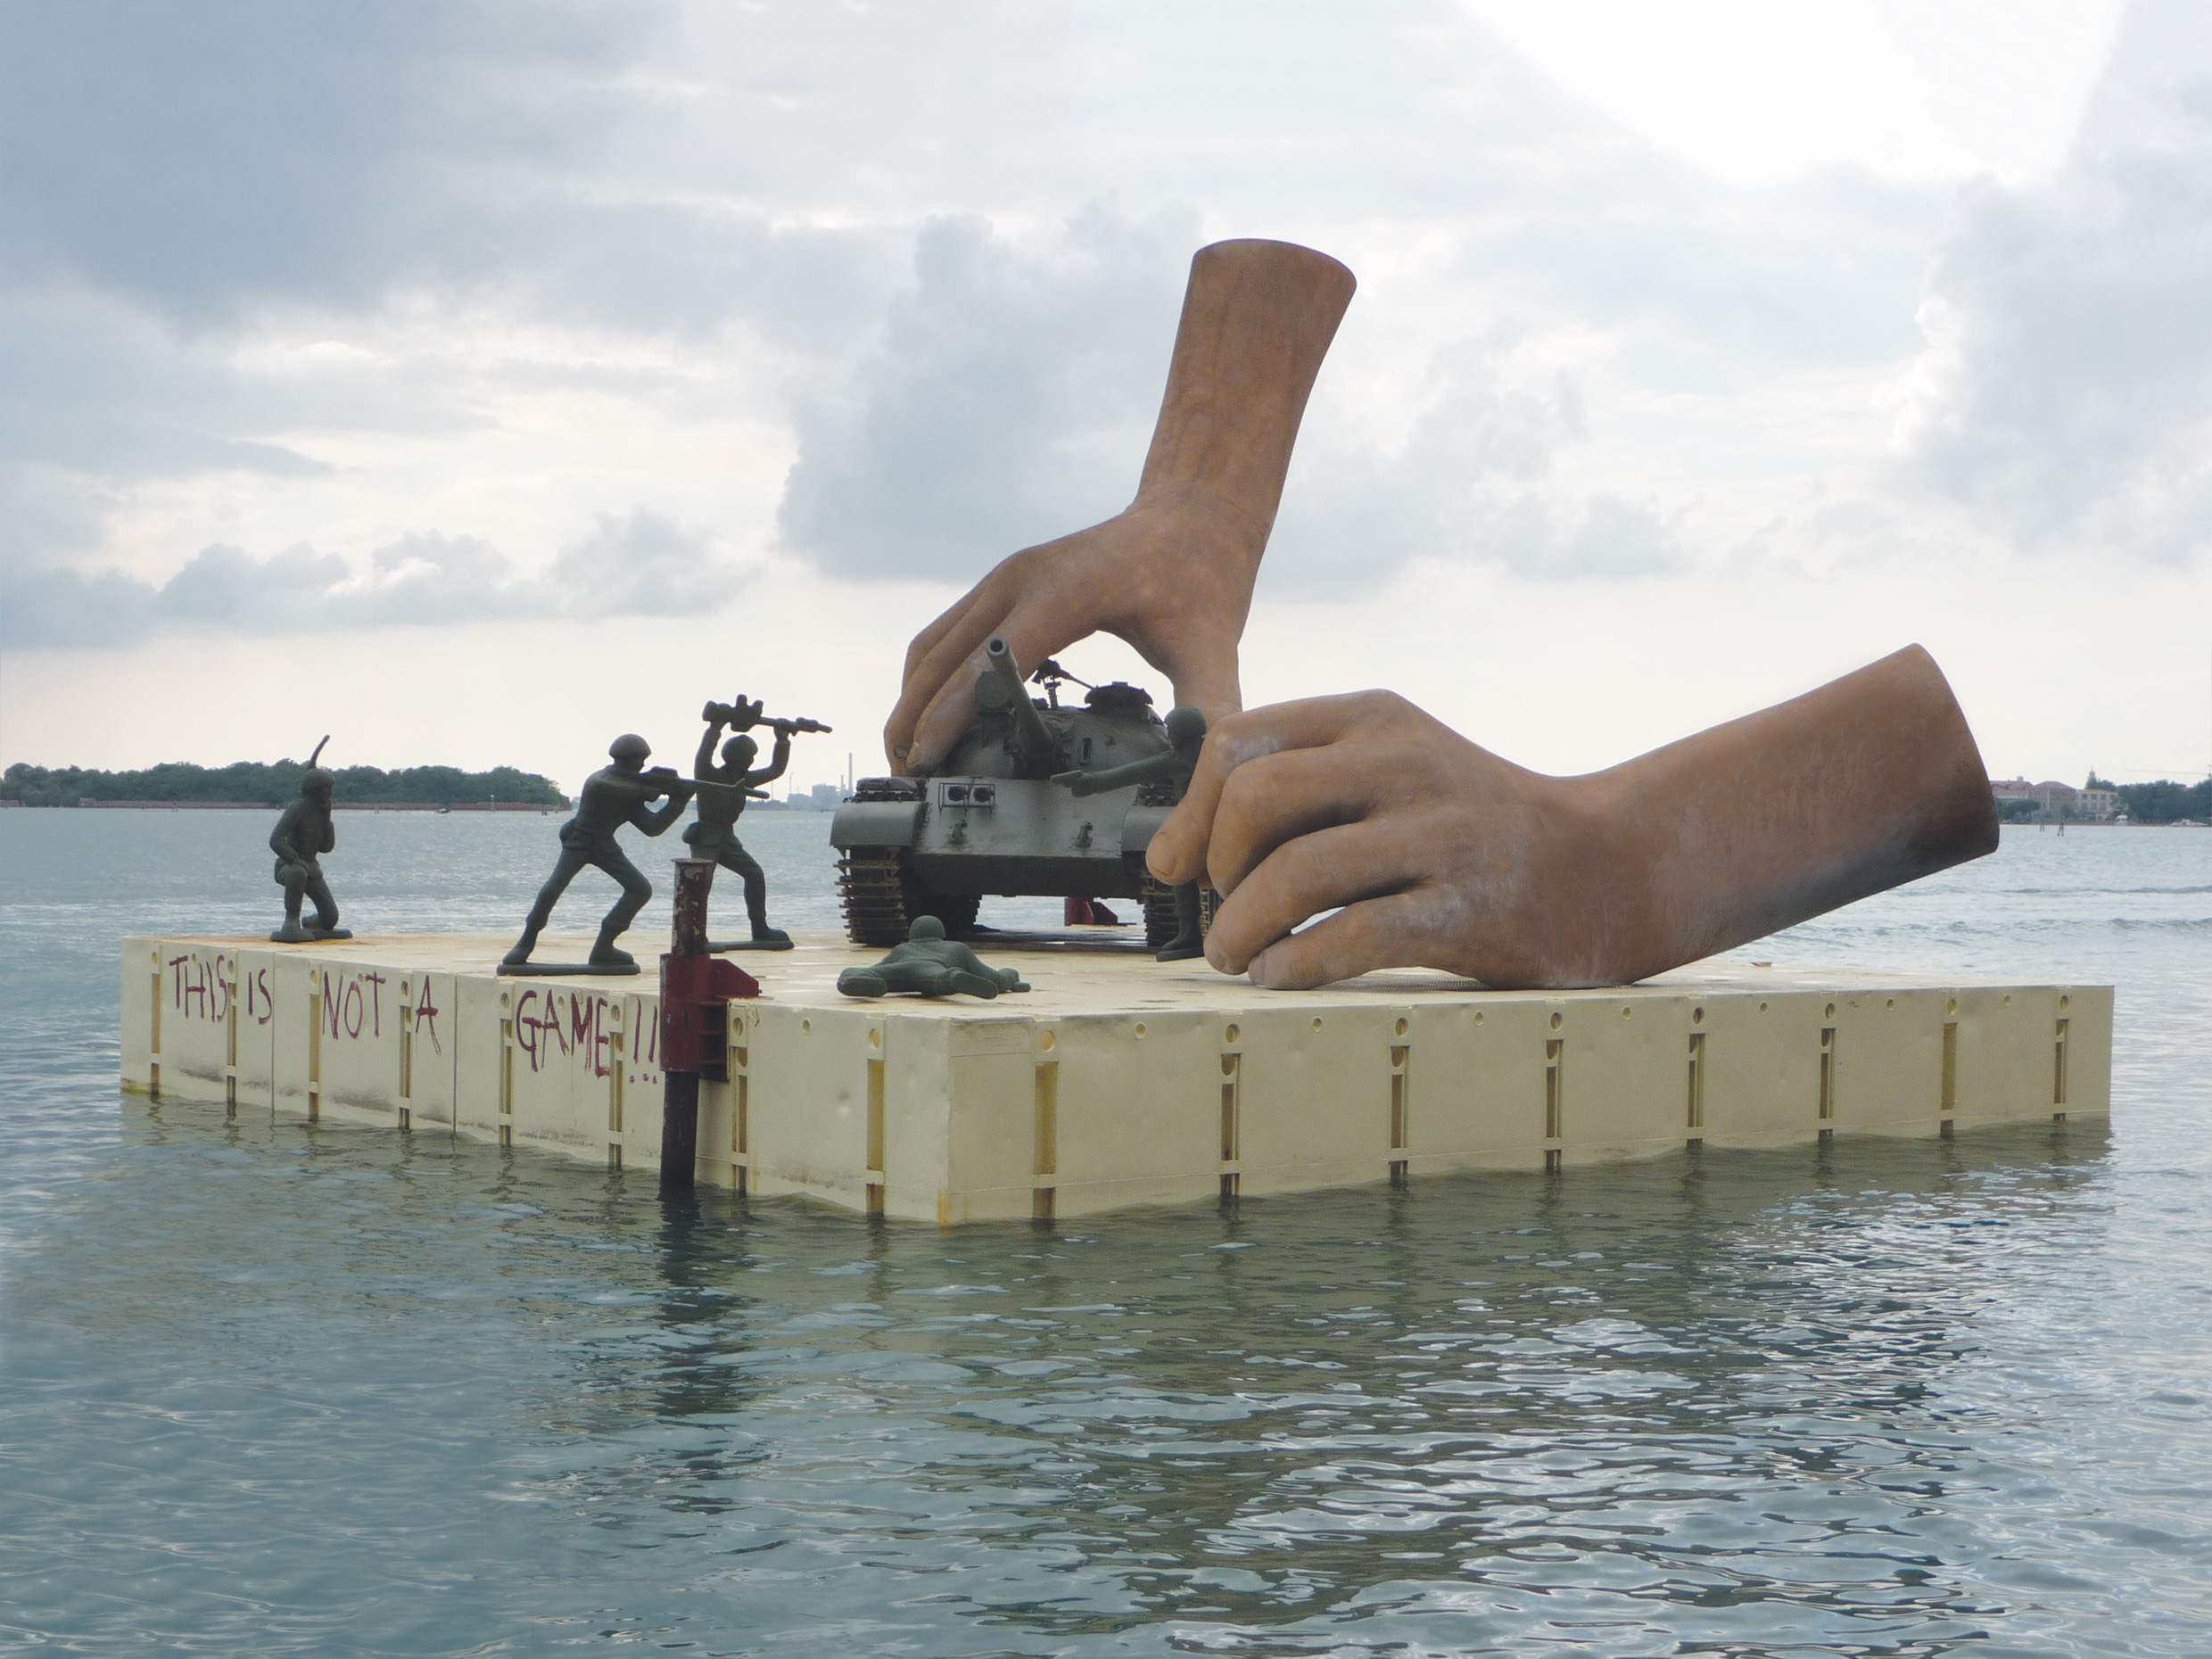 Lorenzo Quinn, This is Not a Game. For the 2011 Venice Biennale. Courtesy of Lorenzo Quinn